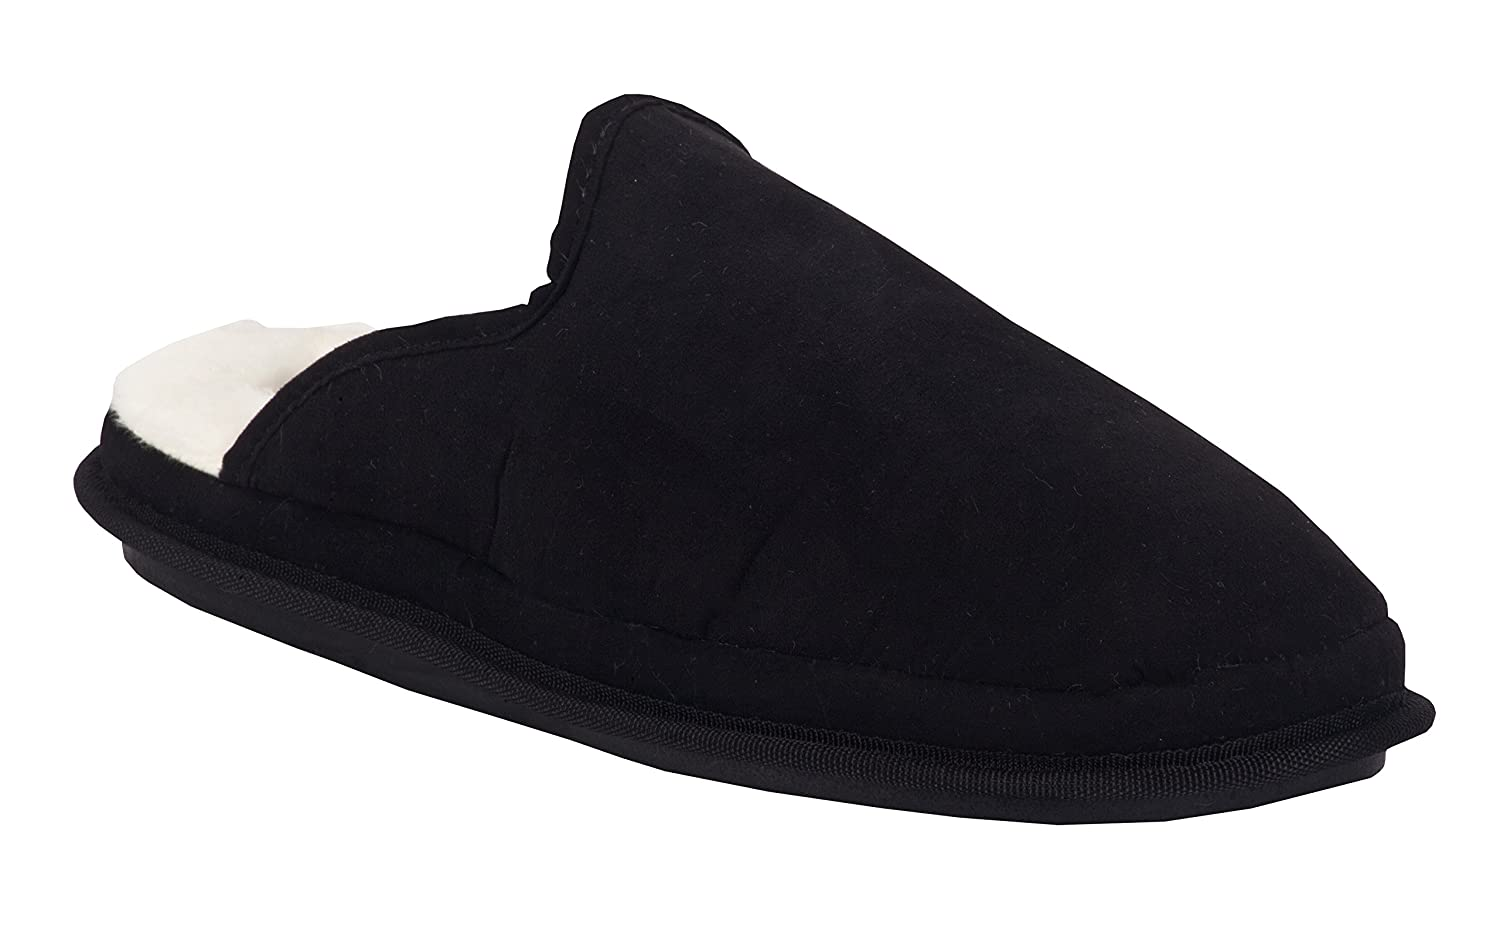 62d6f725a Amazon.com: Aski Slippers Meni Cozy, Super Comfy Slippers for Men - Faux  Fur with Memory Foam Cushioning Footwear: Shoes